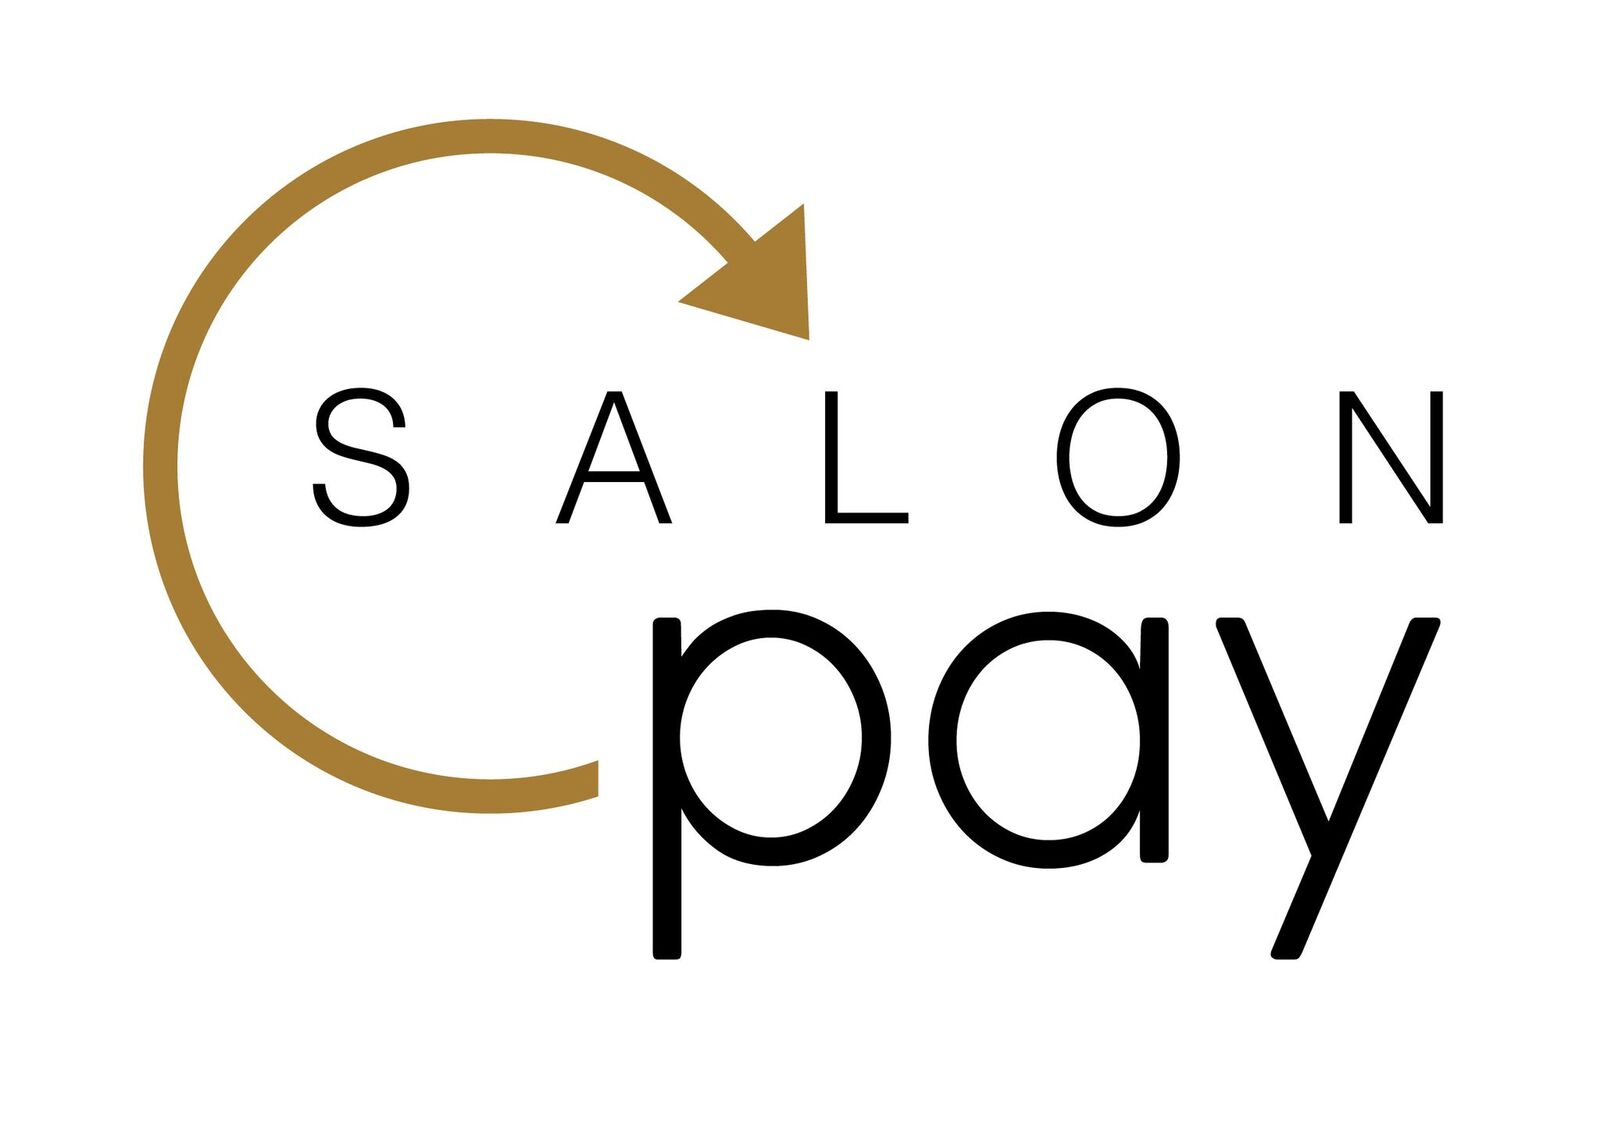 salon pay logo.jpg